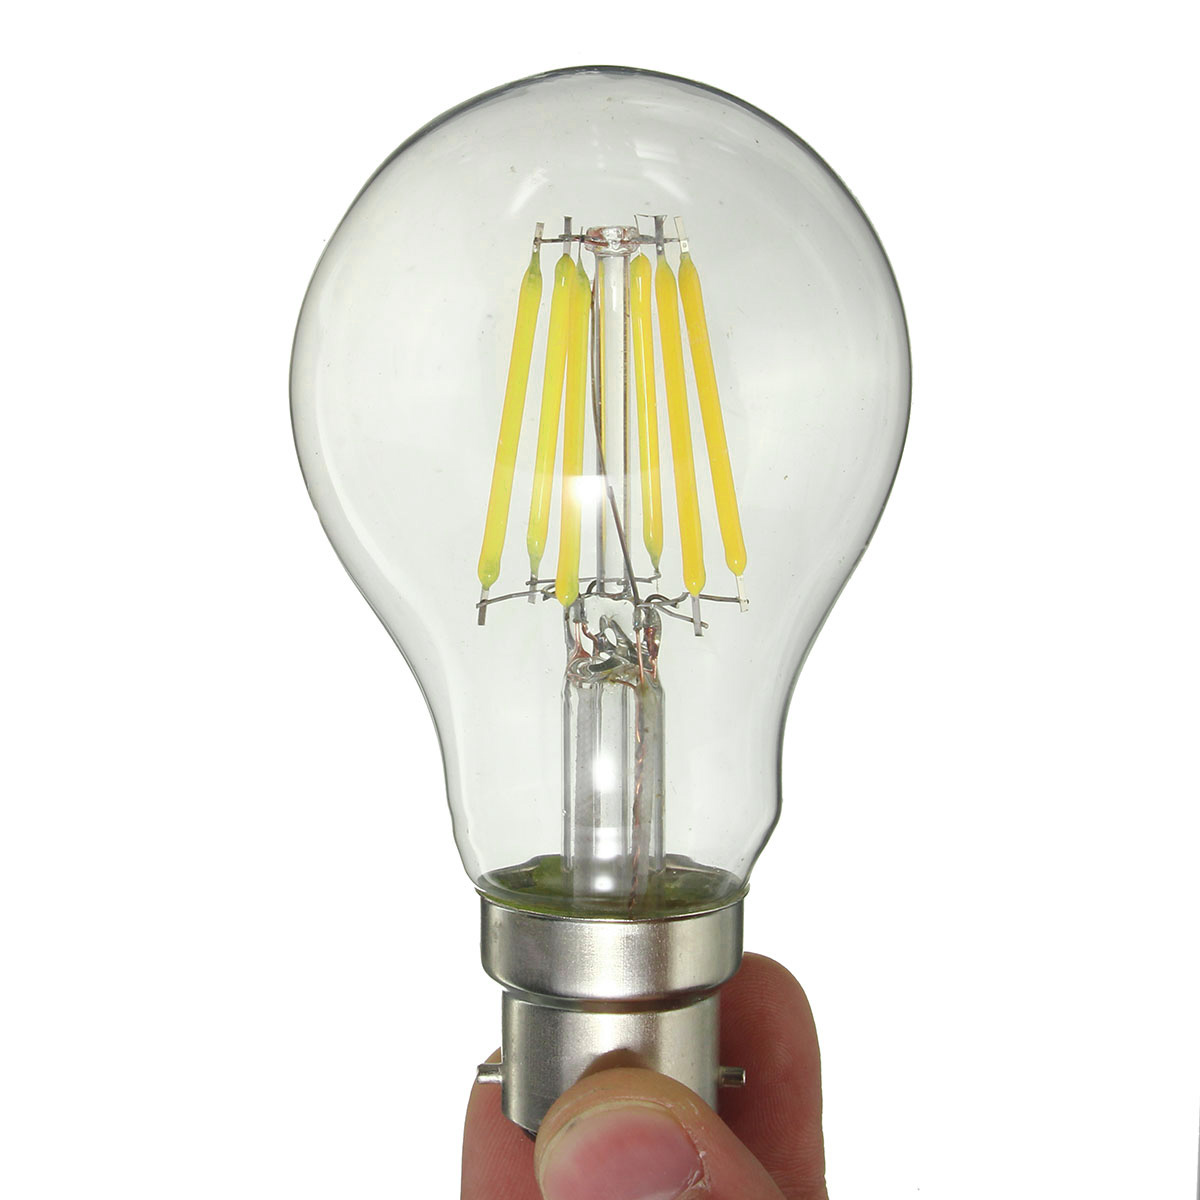 Dimmable B22 A60 6W Pure White Warm White COB Filament Edison Retro Light Lamp Bulb AC220V